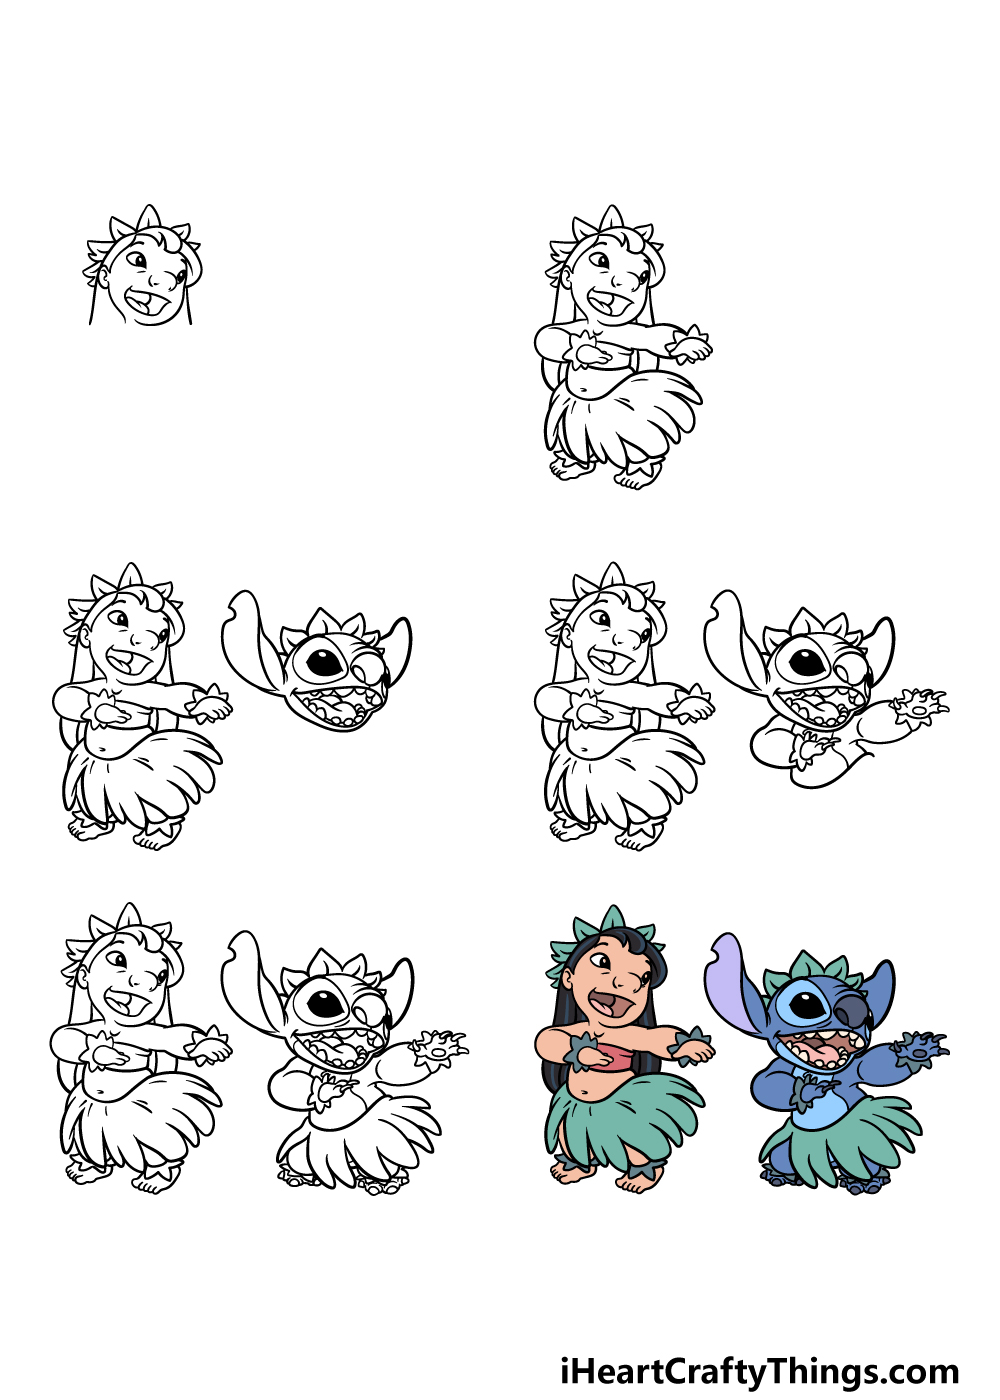 how to draw Lilo and Stitch in 6 steps